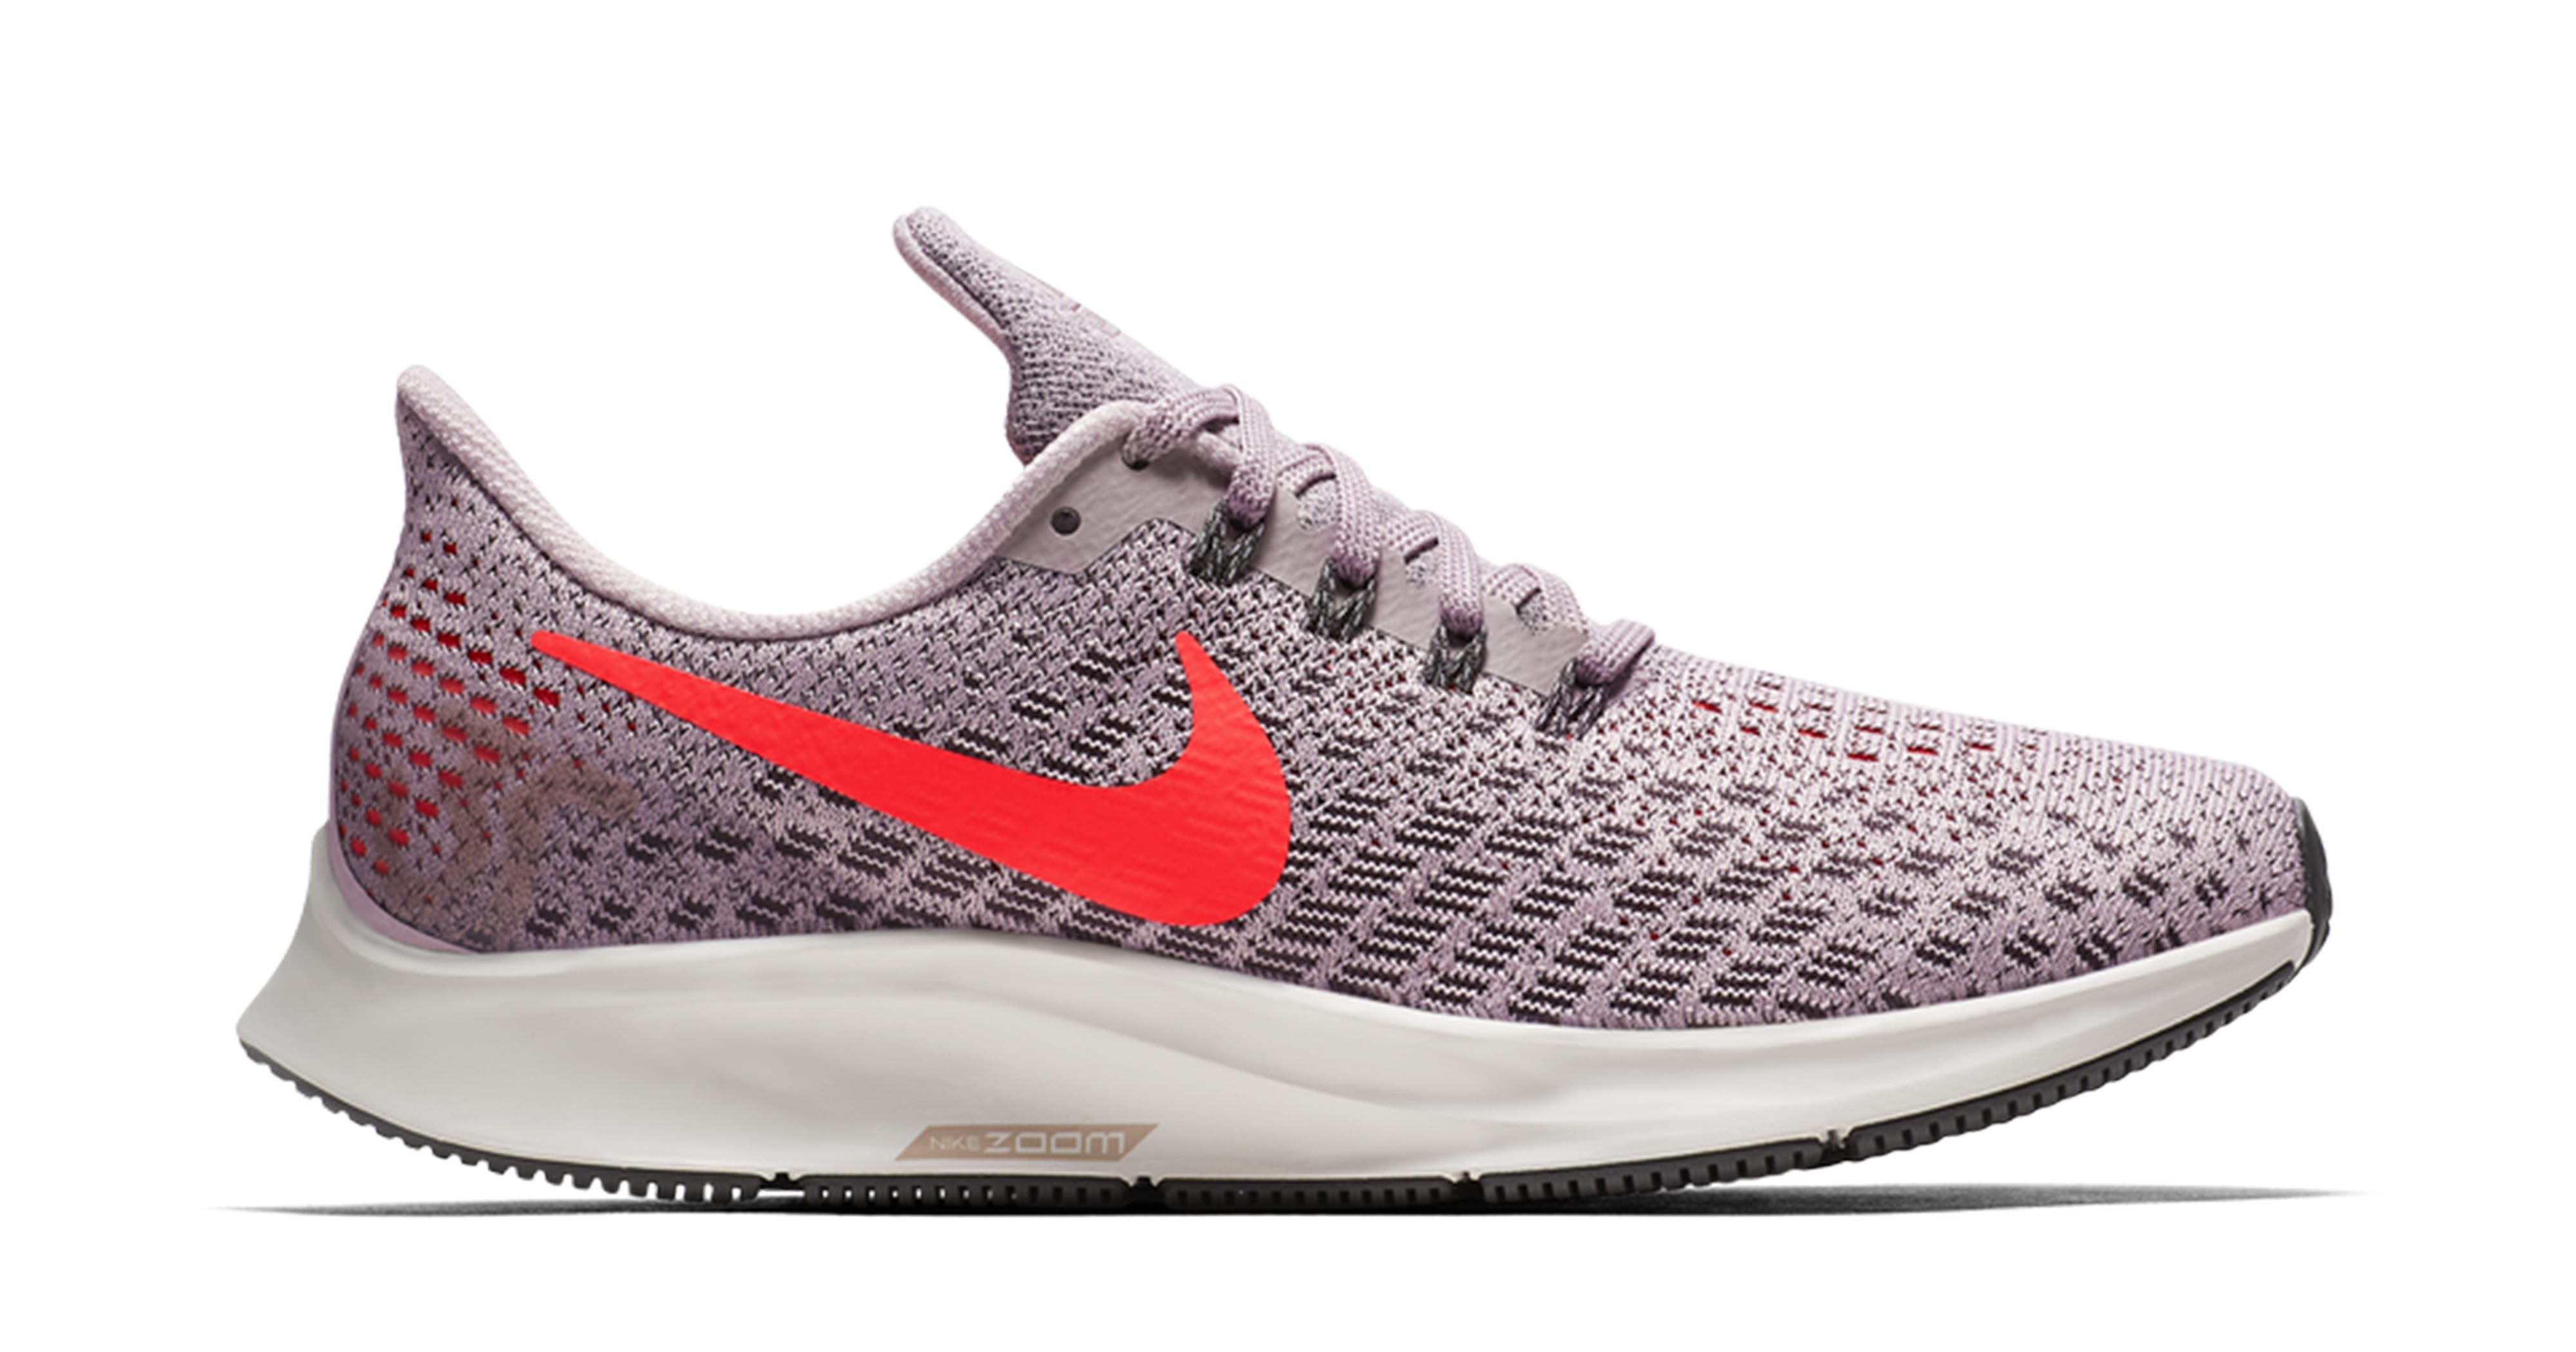 f38cd0135eb Nike Air Zoom Pegasus 35 - Womens Running Shoe Review